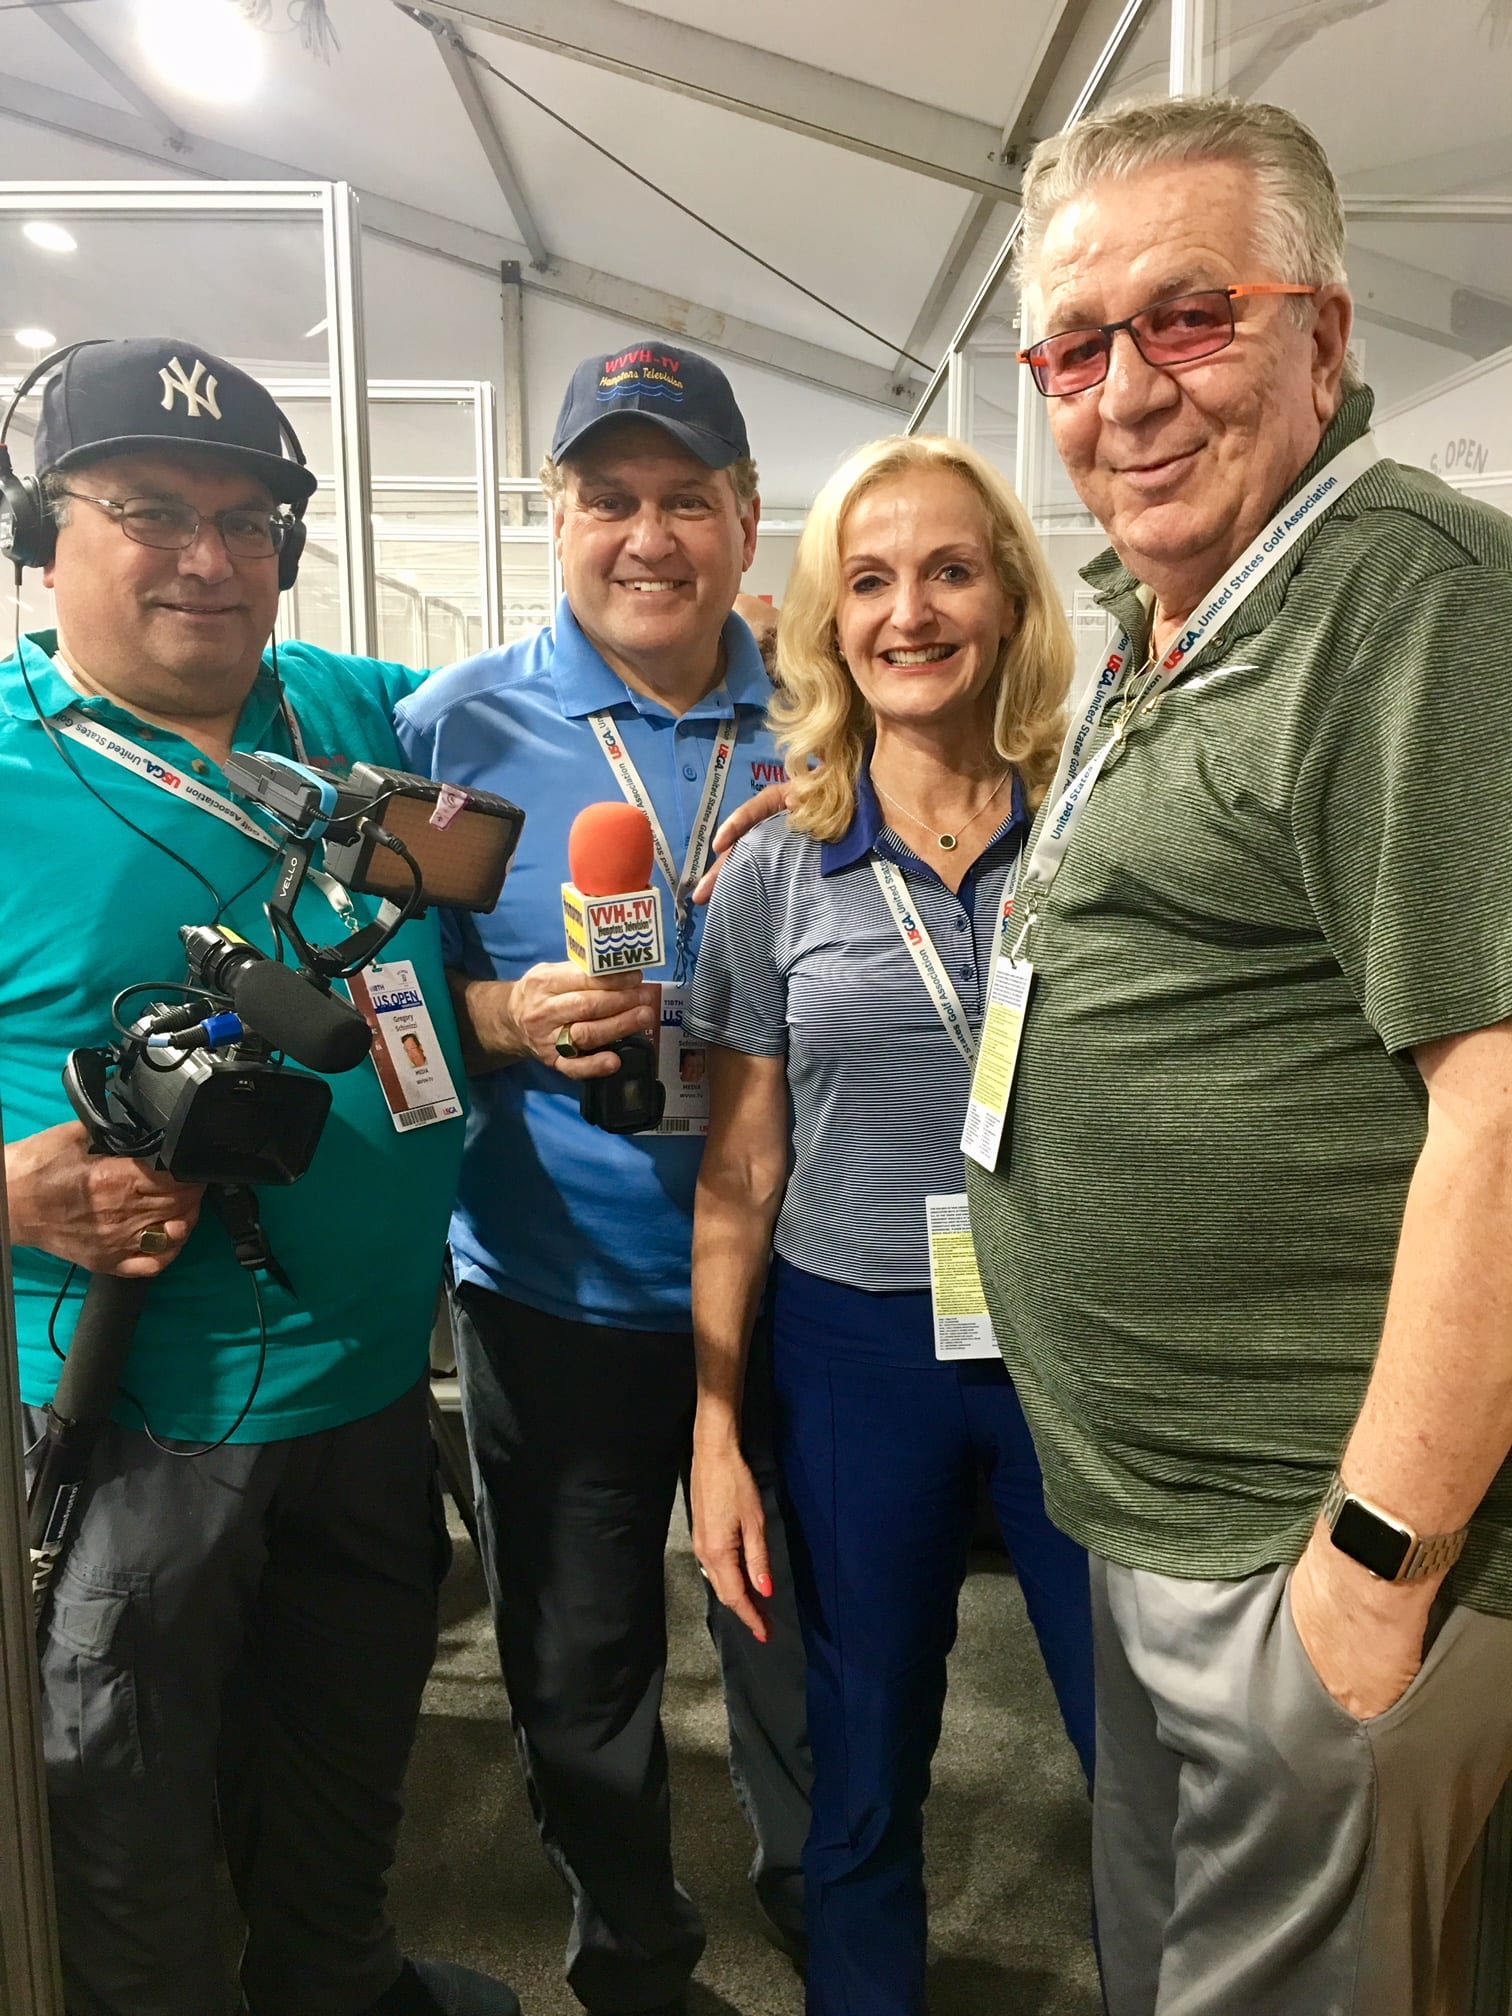 WVVH Covers the US Open for the Local Market – Broadcasting